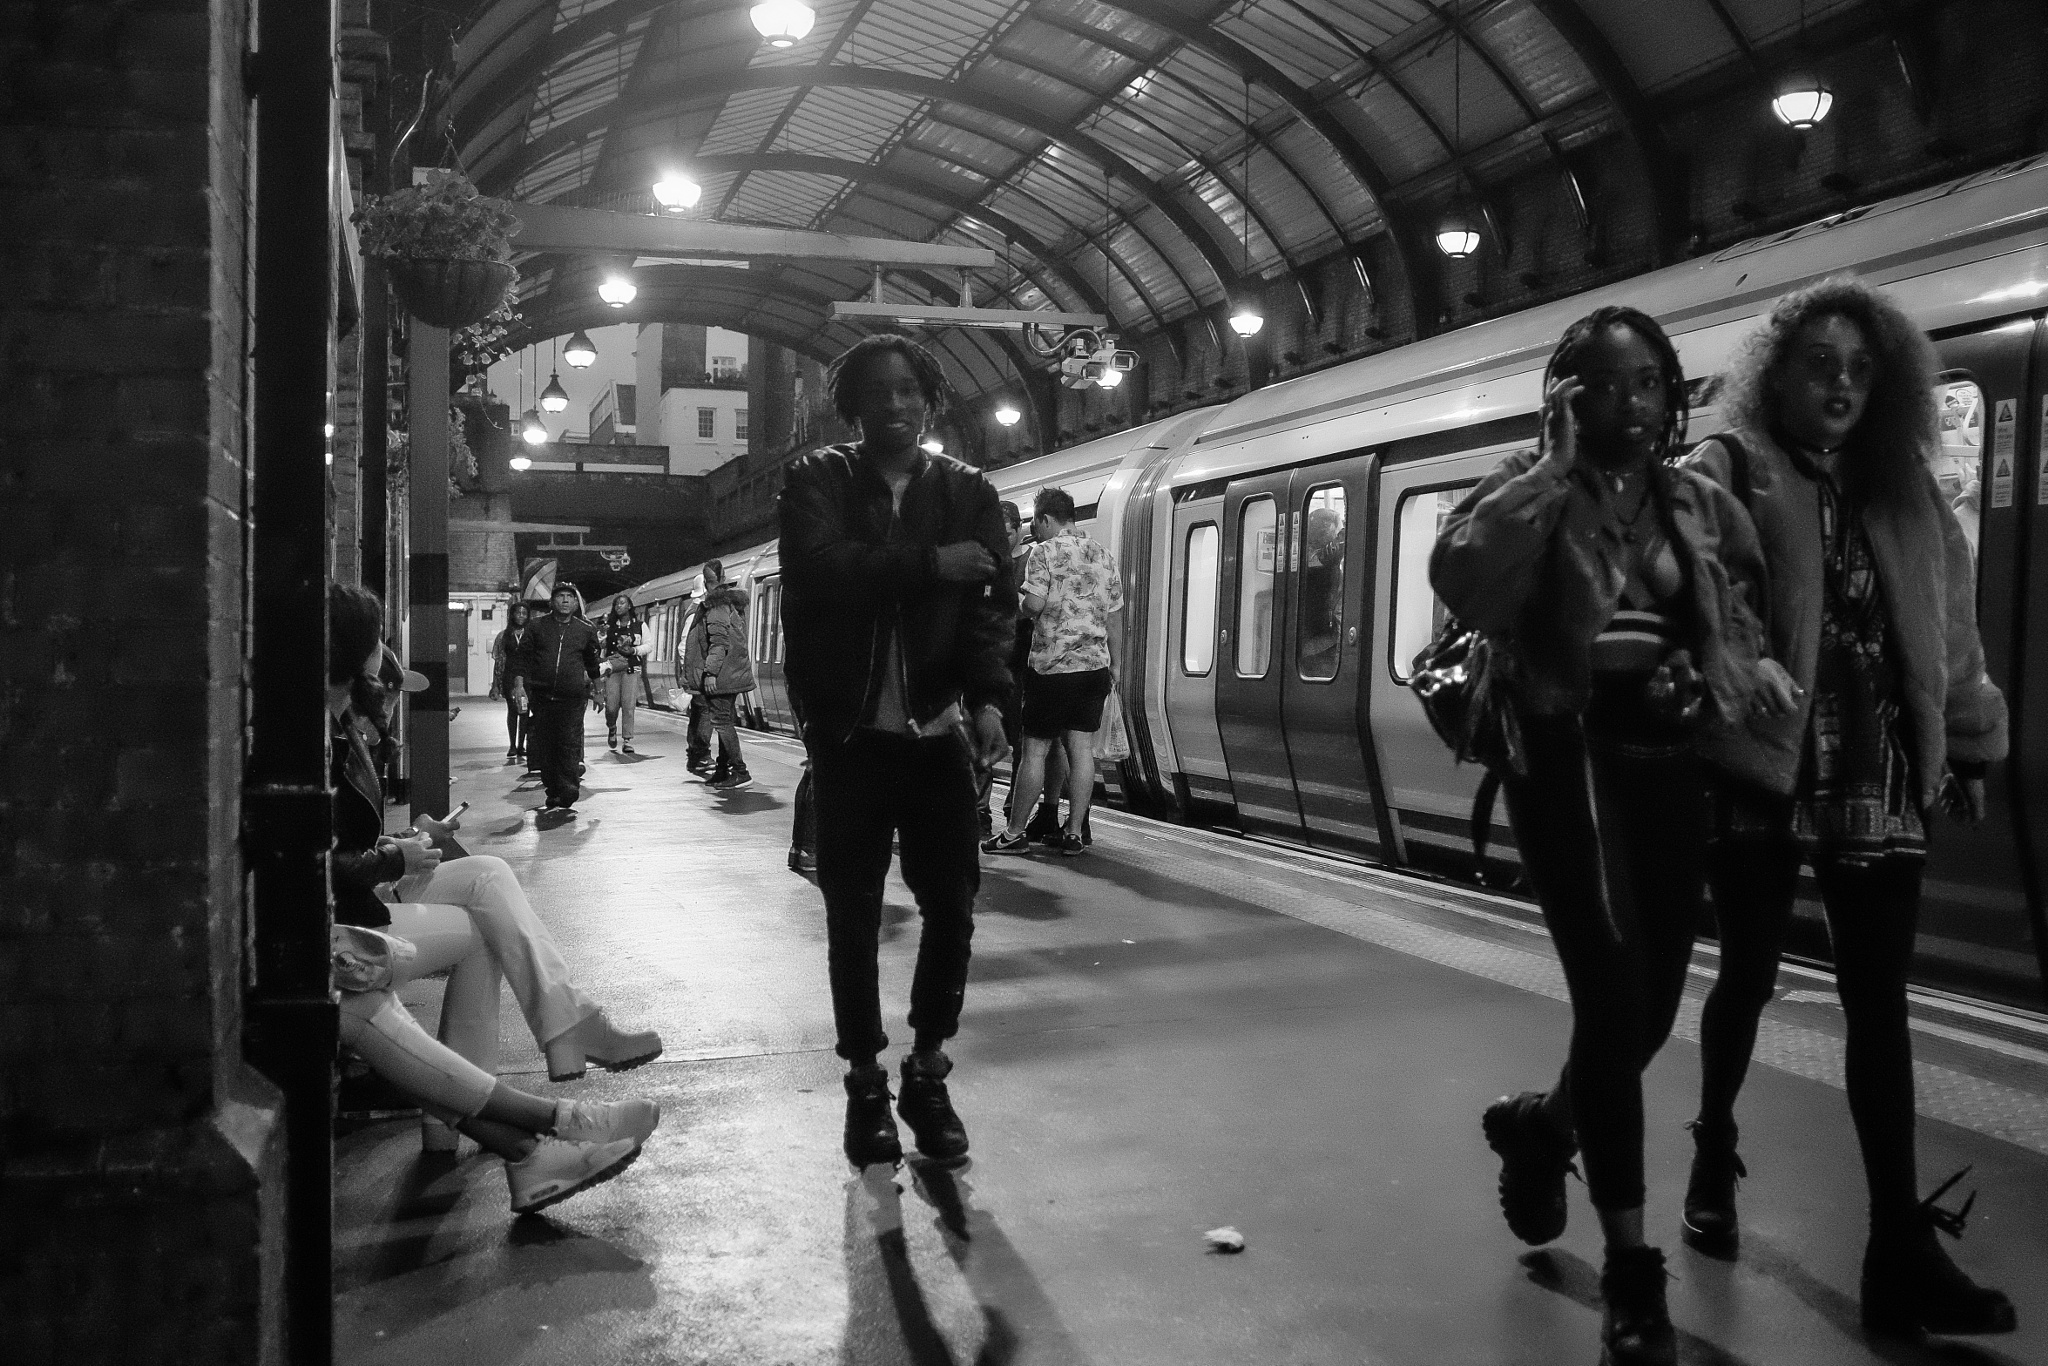 Notting Hill Gate Tube Station, Notting Hill Gate, West London, England, UK. by StreetCrusader